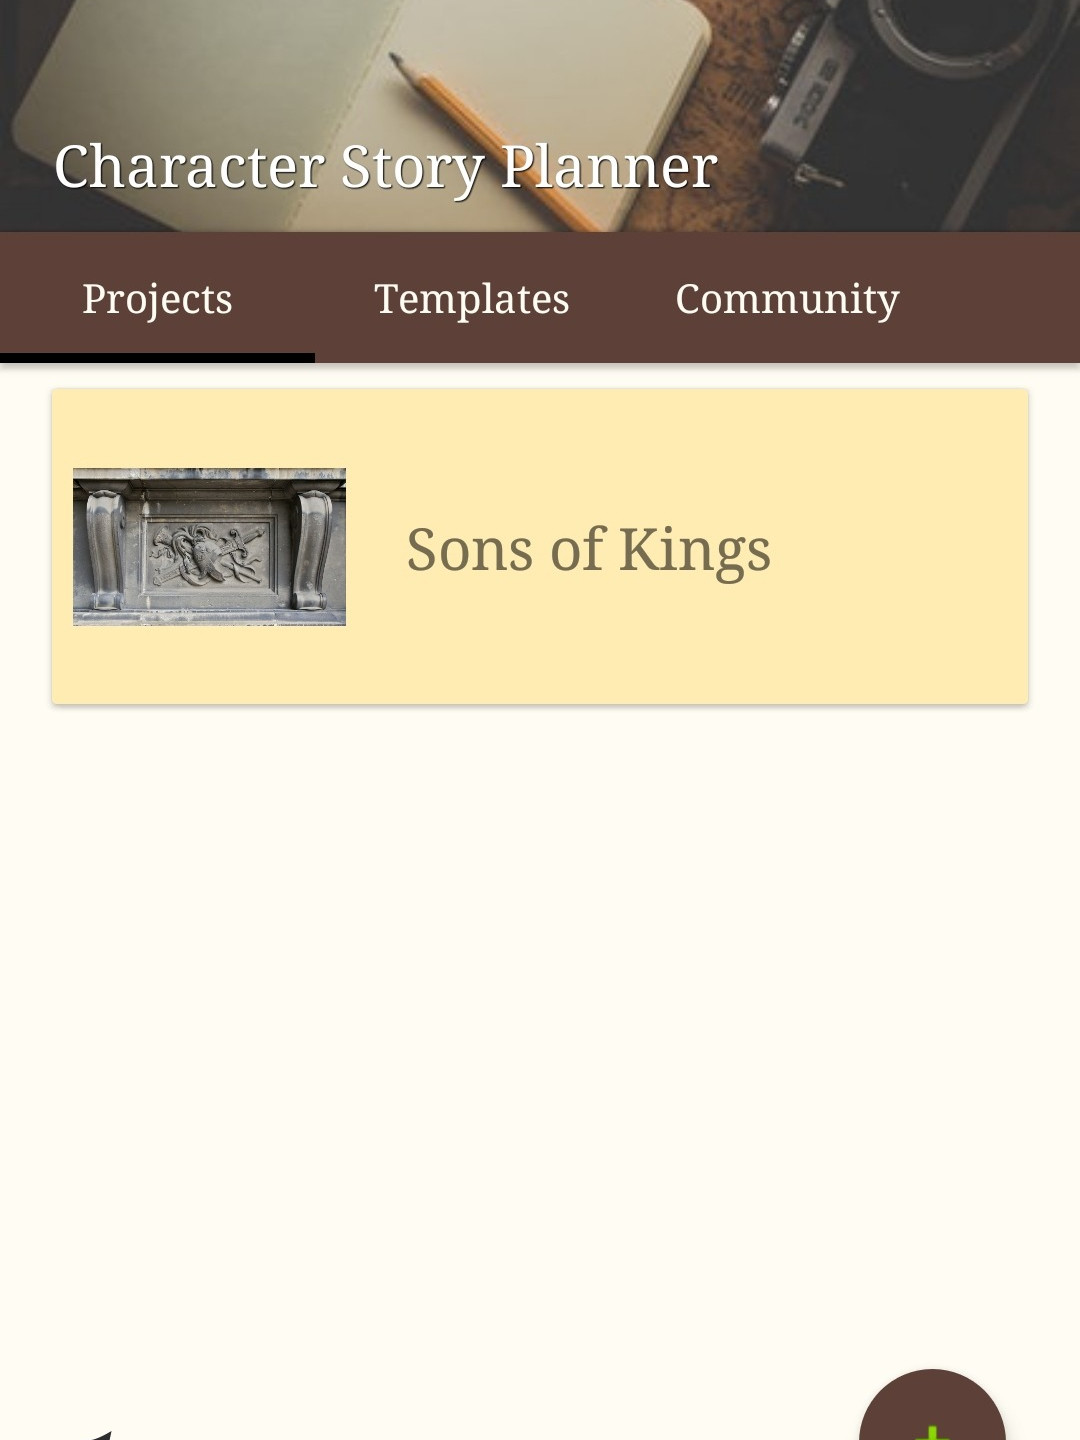 1. Projects list (main page)